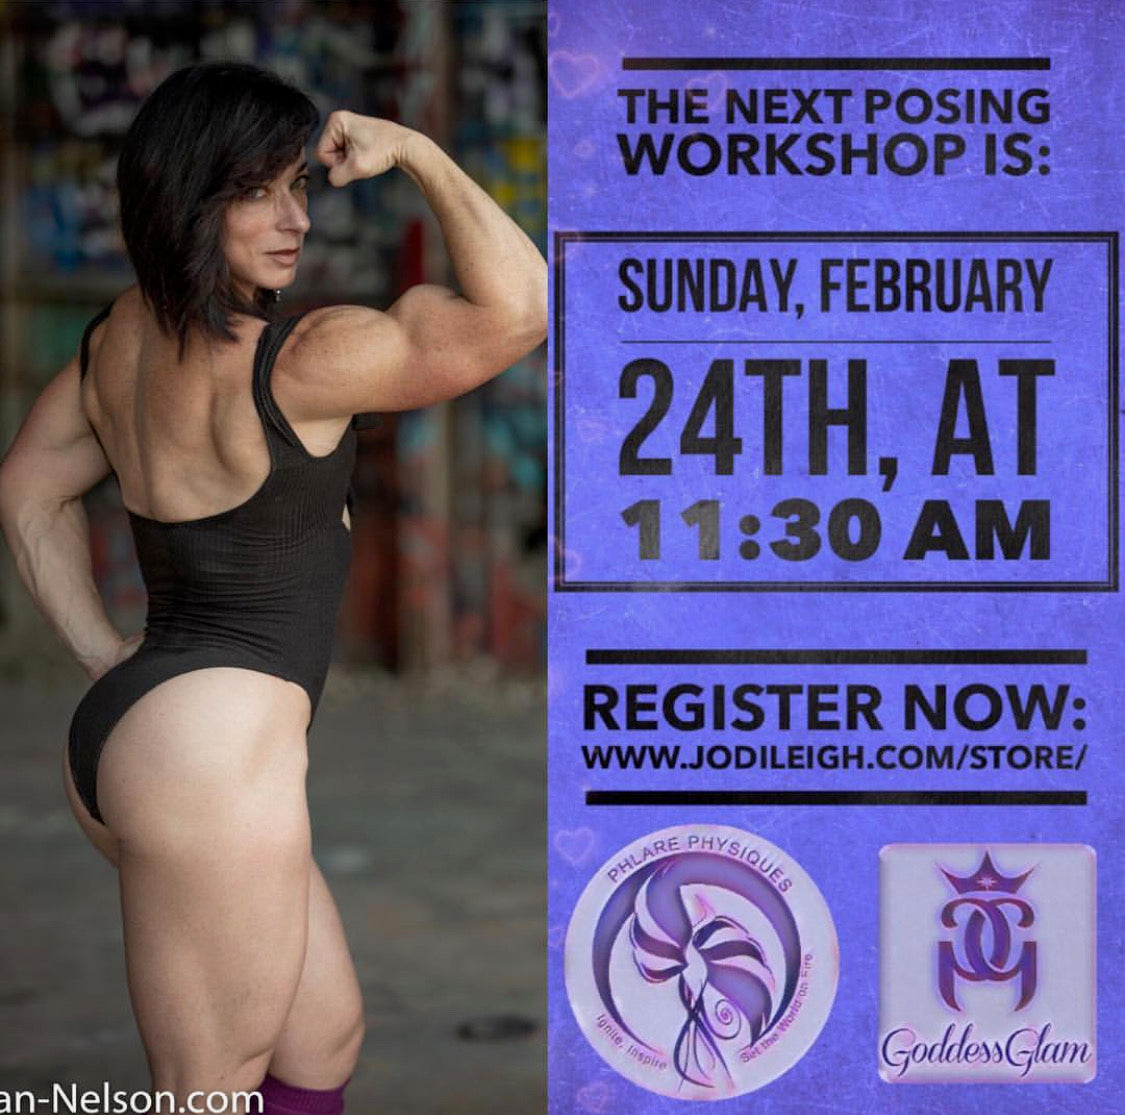 IFBB Pro Jodi Miller's Posing Workshop Sunday, February 24th